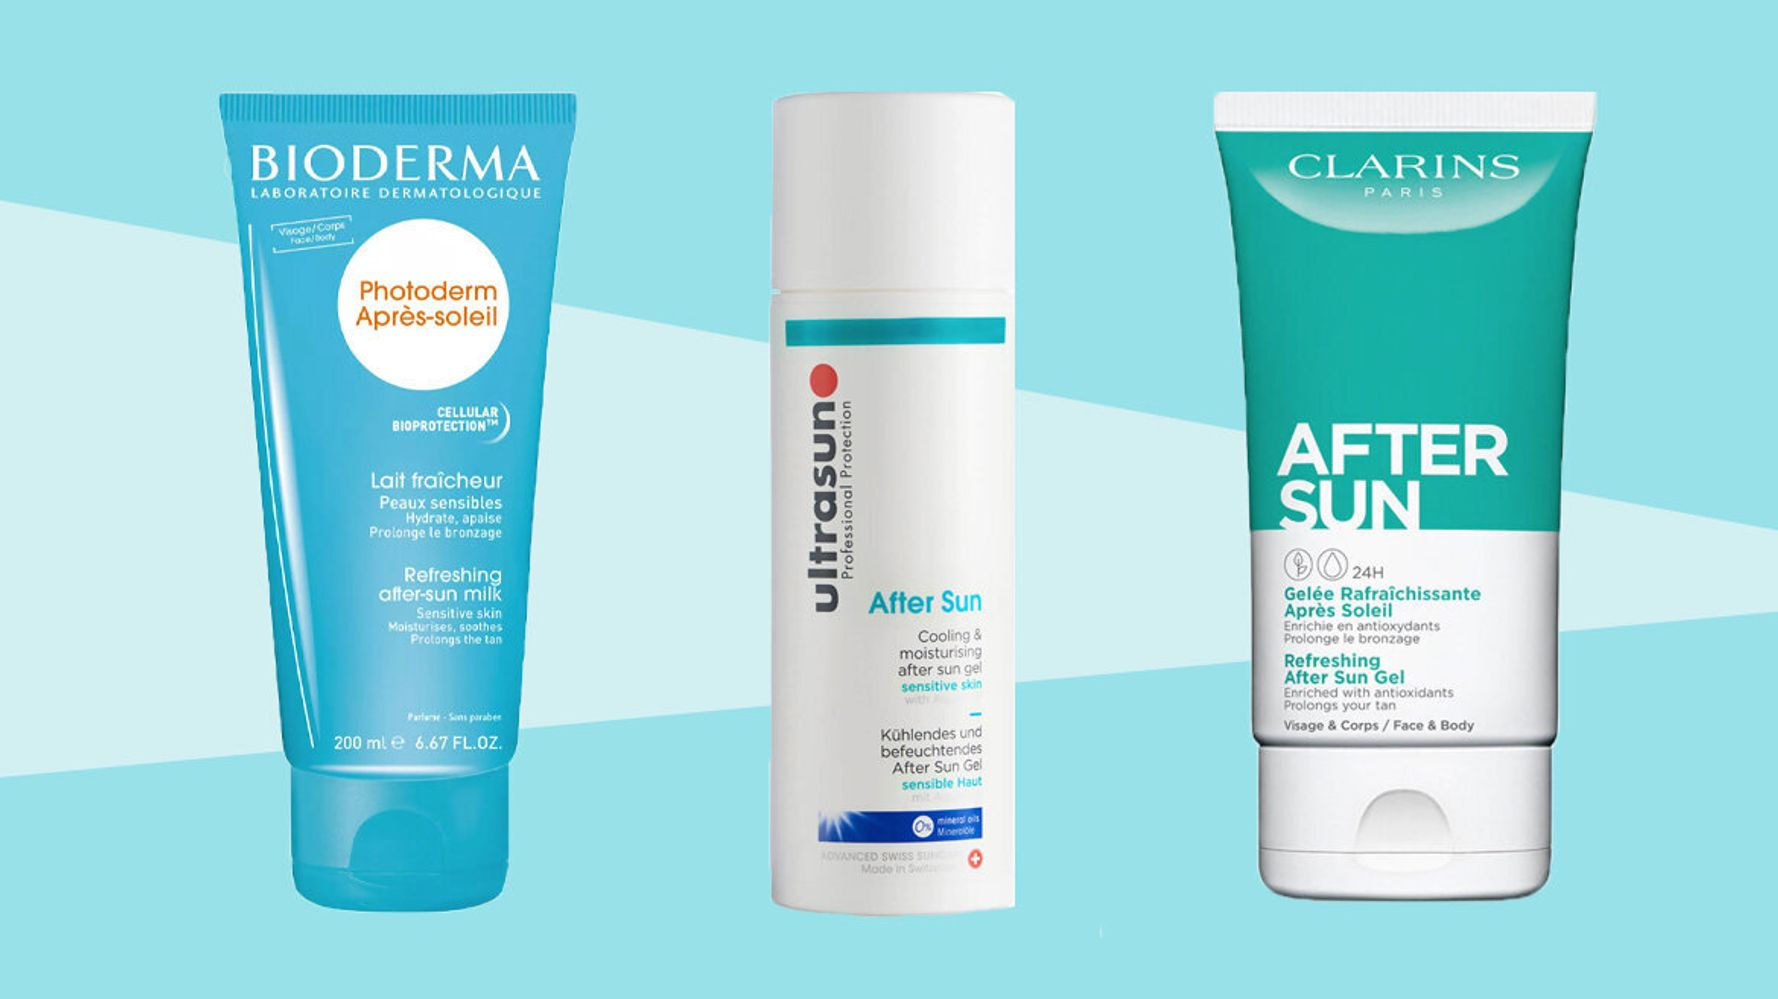 7 Cooling After Sun Products To Take The Sting Out Of Your Sunburn